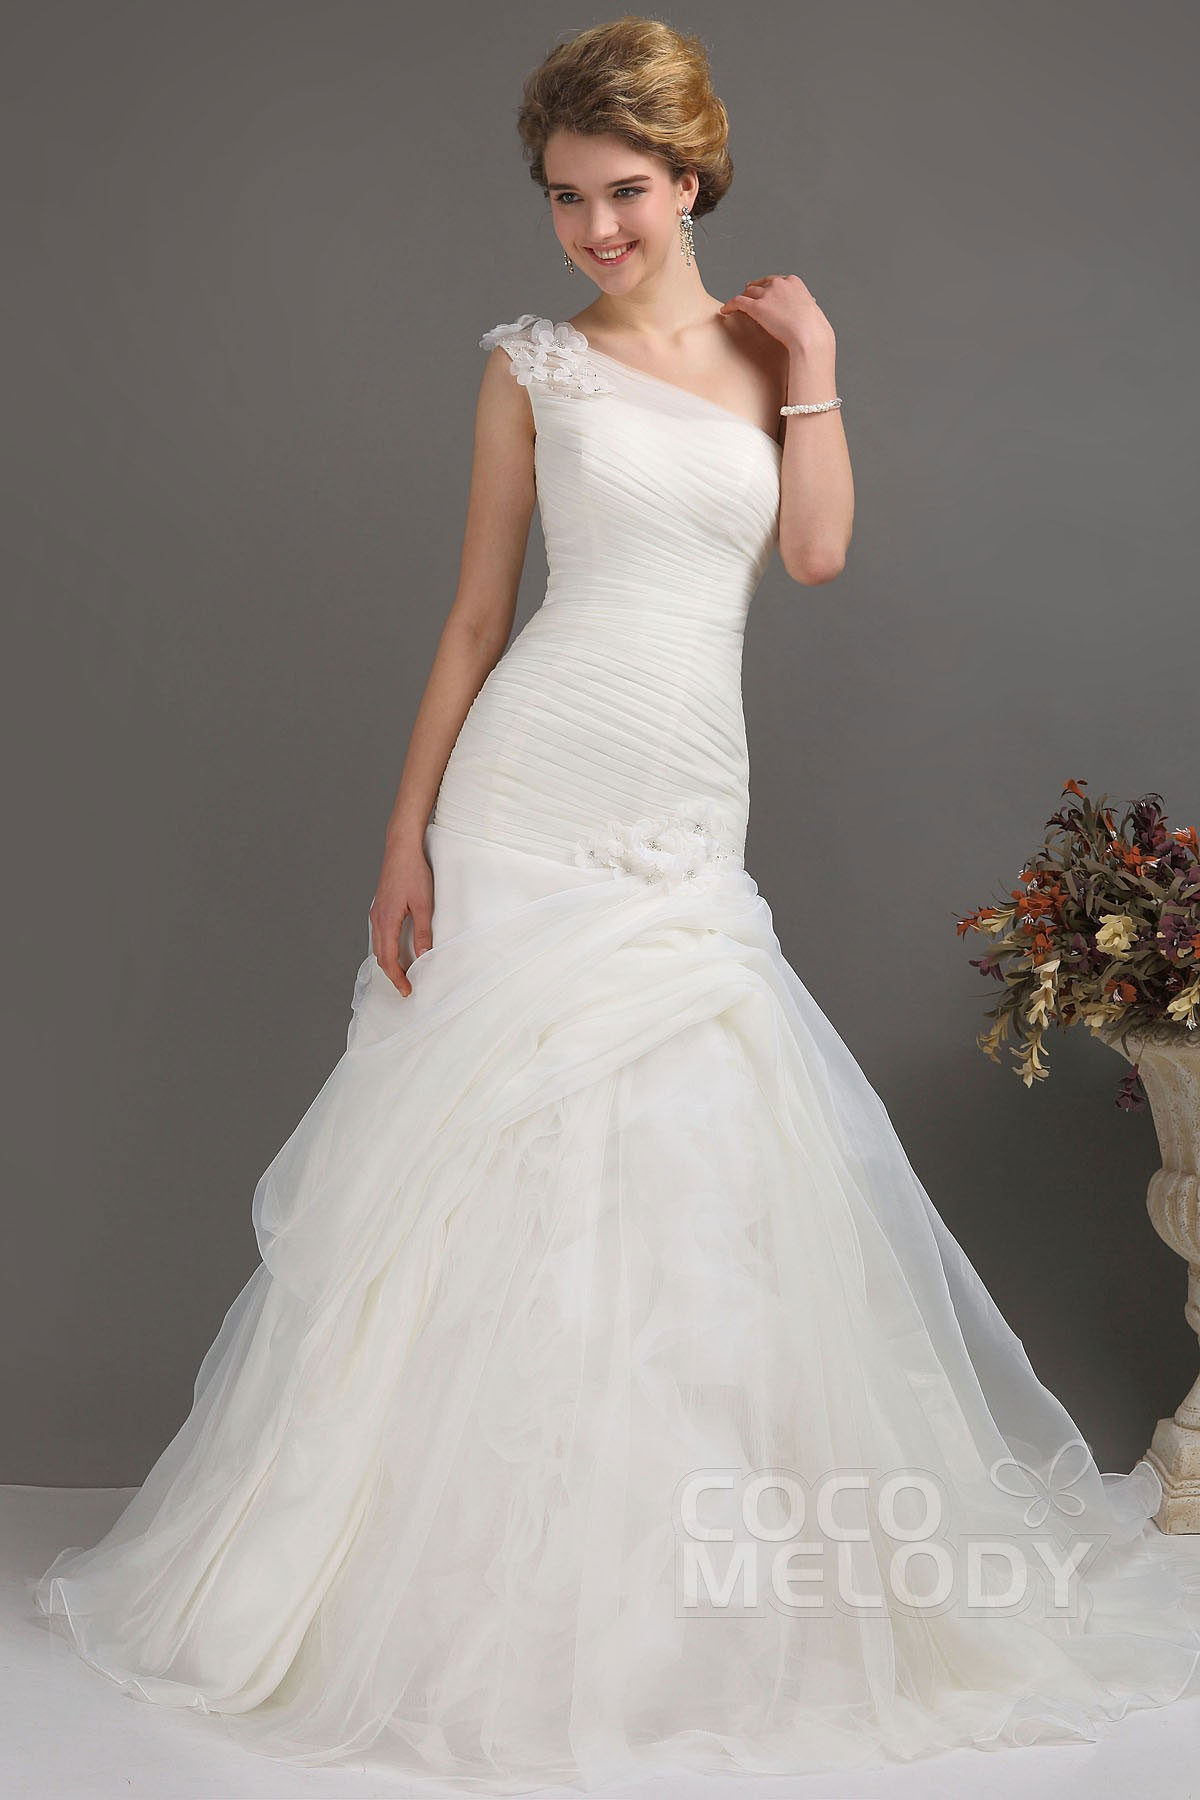 Trumpet-Mermaid Train Organza Wedding Dress CWLT130DD | Cocomelody